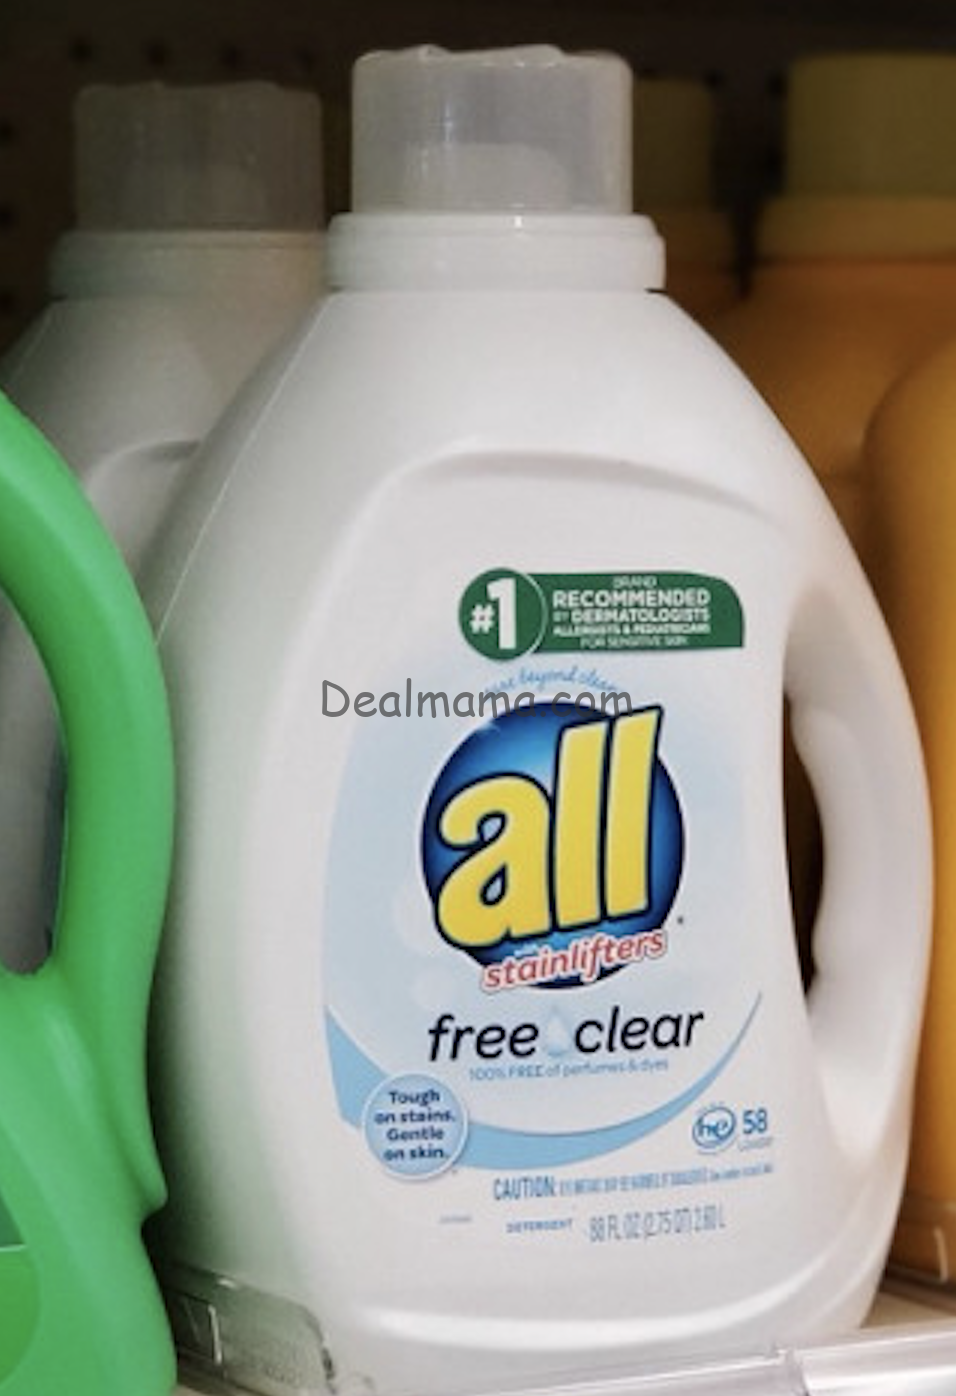 All Laundry Detergent 88 oz Bottle only 2.99 at Walgreens!